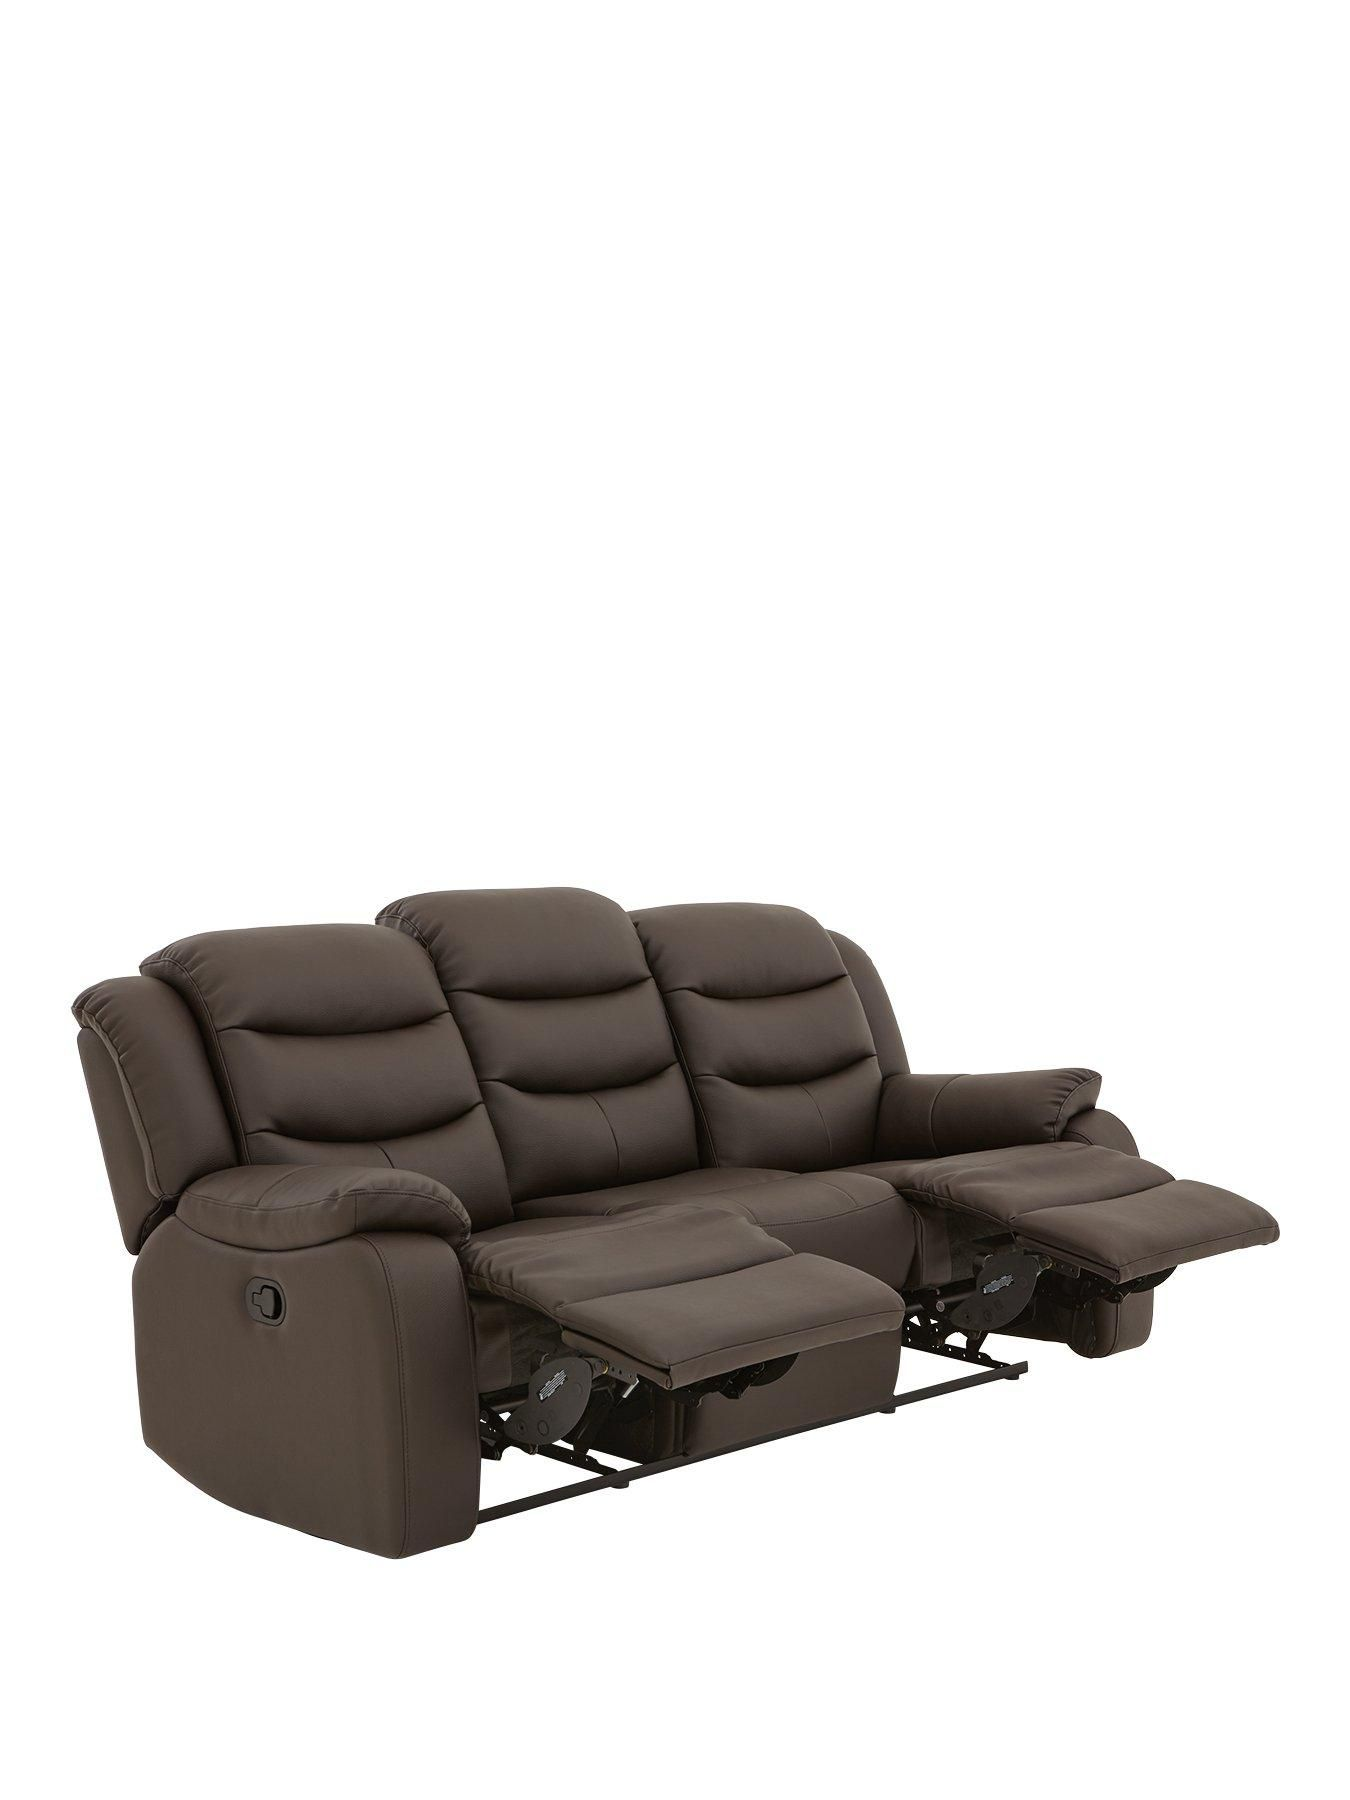 Rothbury Luxury Faux Leather 3 Seater Manual Recliner Sofa